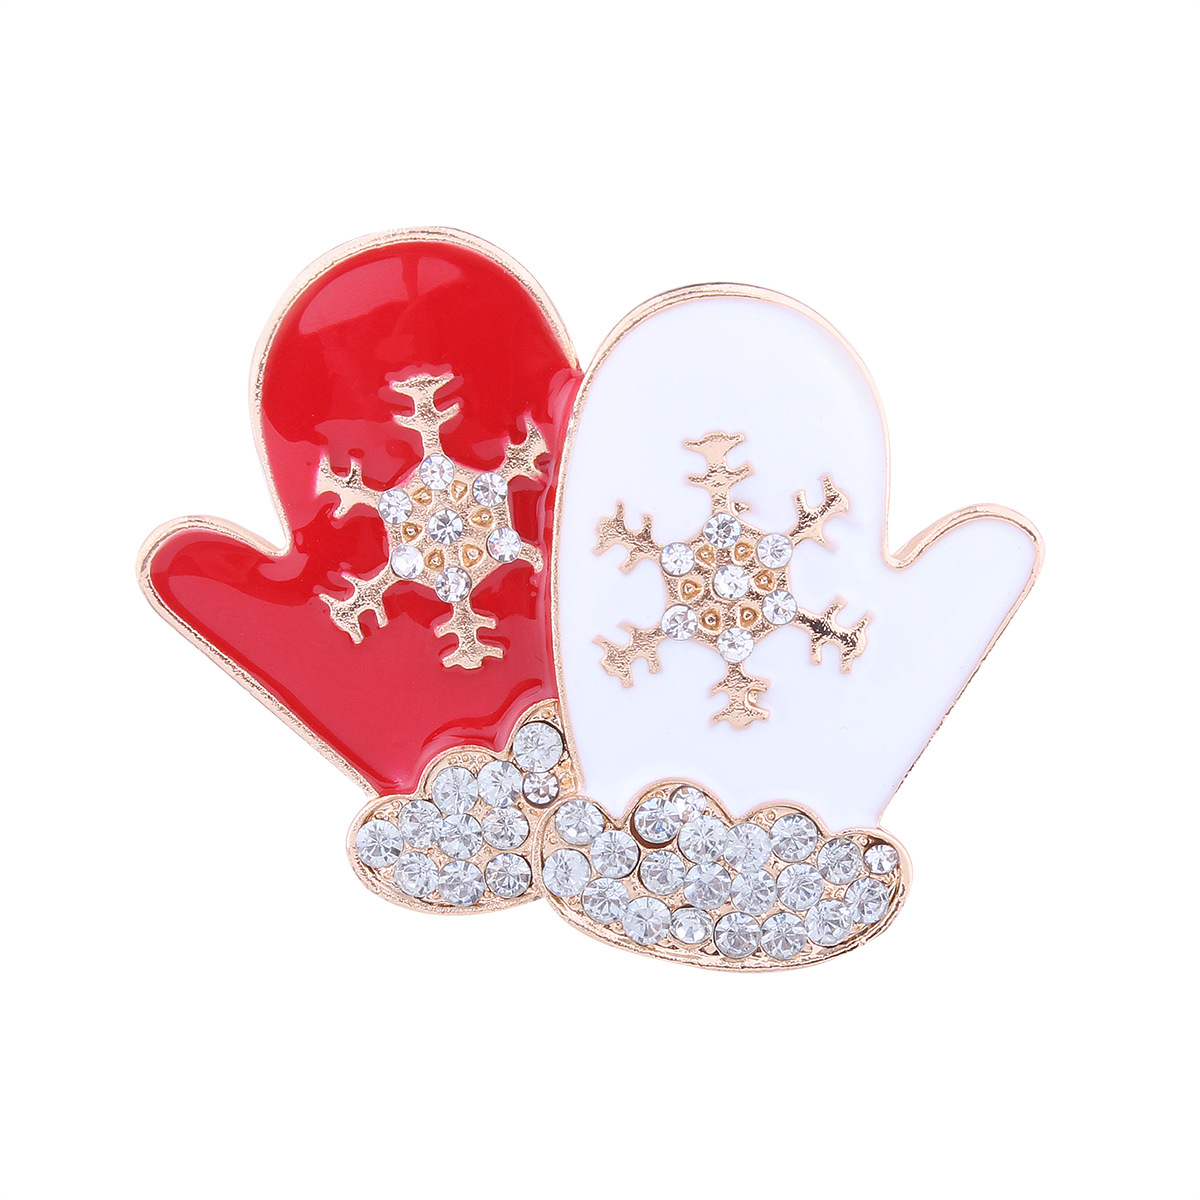 Occident and the United States alloy Diamond brooch (red)NHNMD3846-red